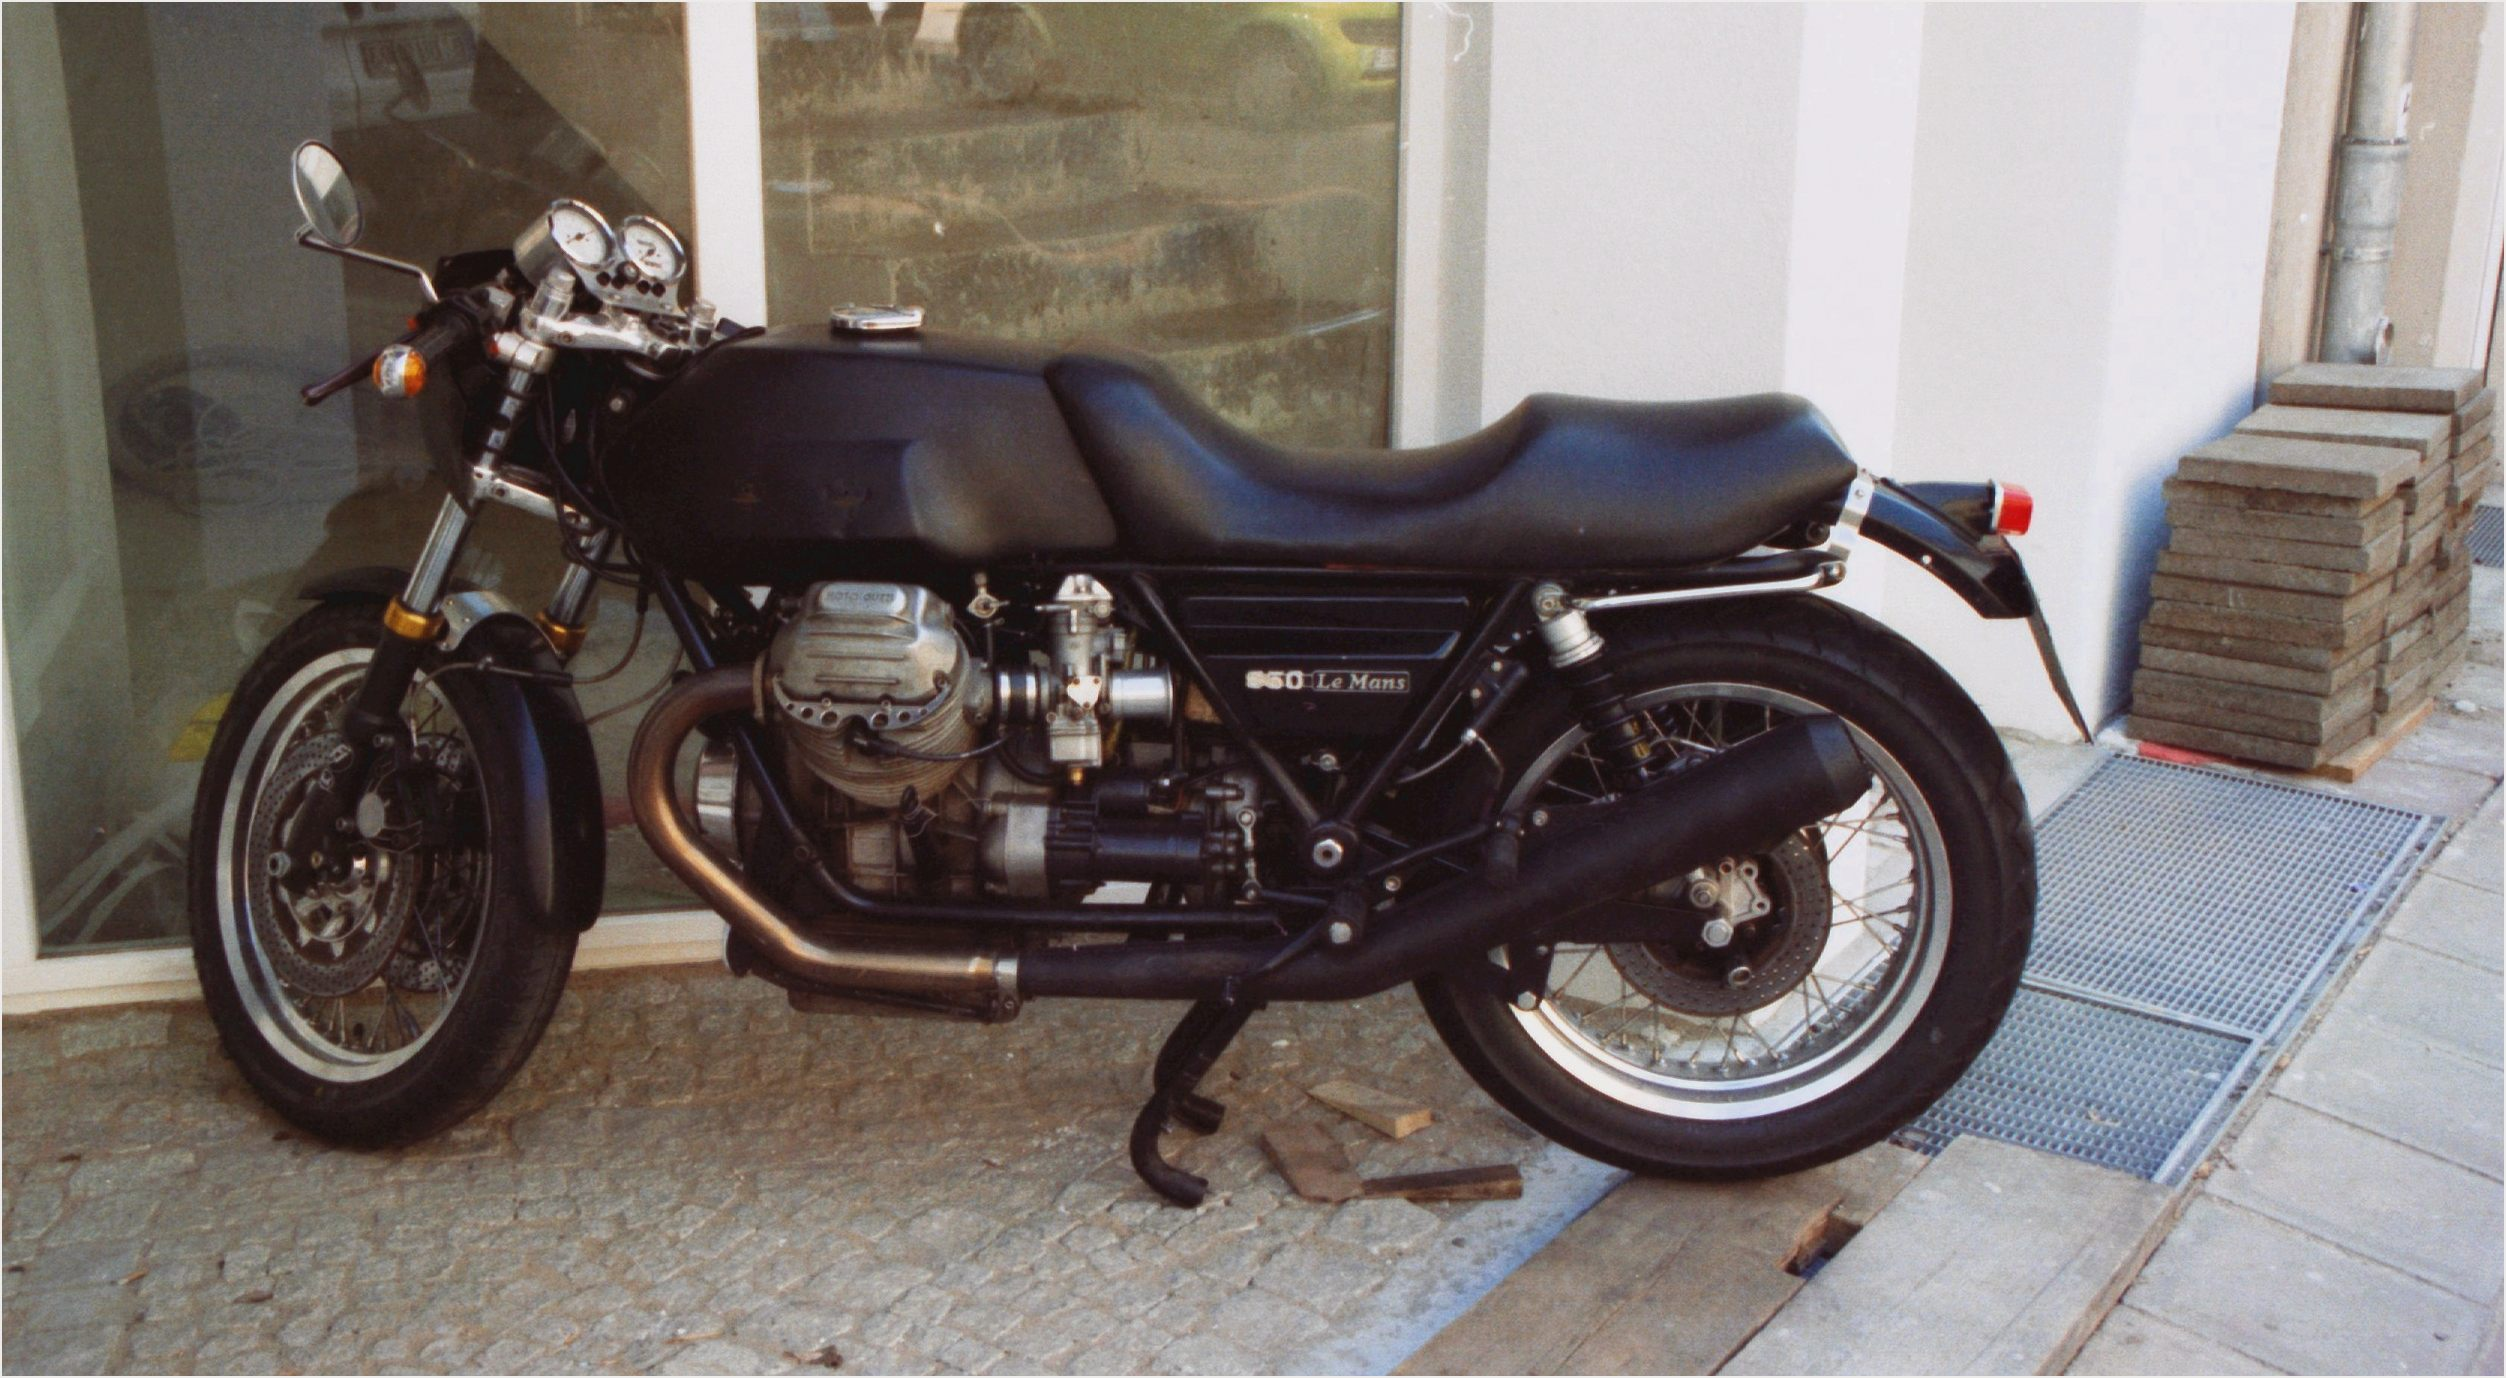 Moto Guzzi California 1100 Injection 1994 images #108130